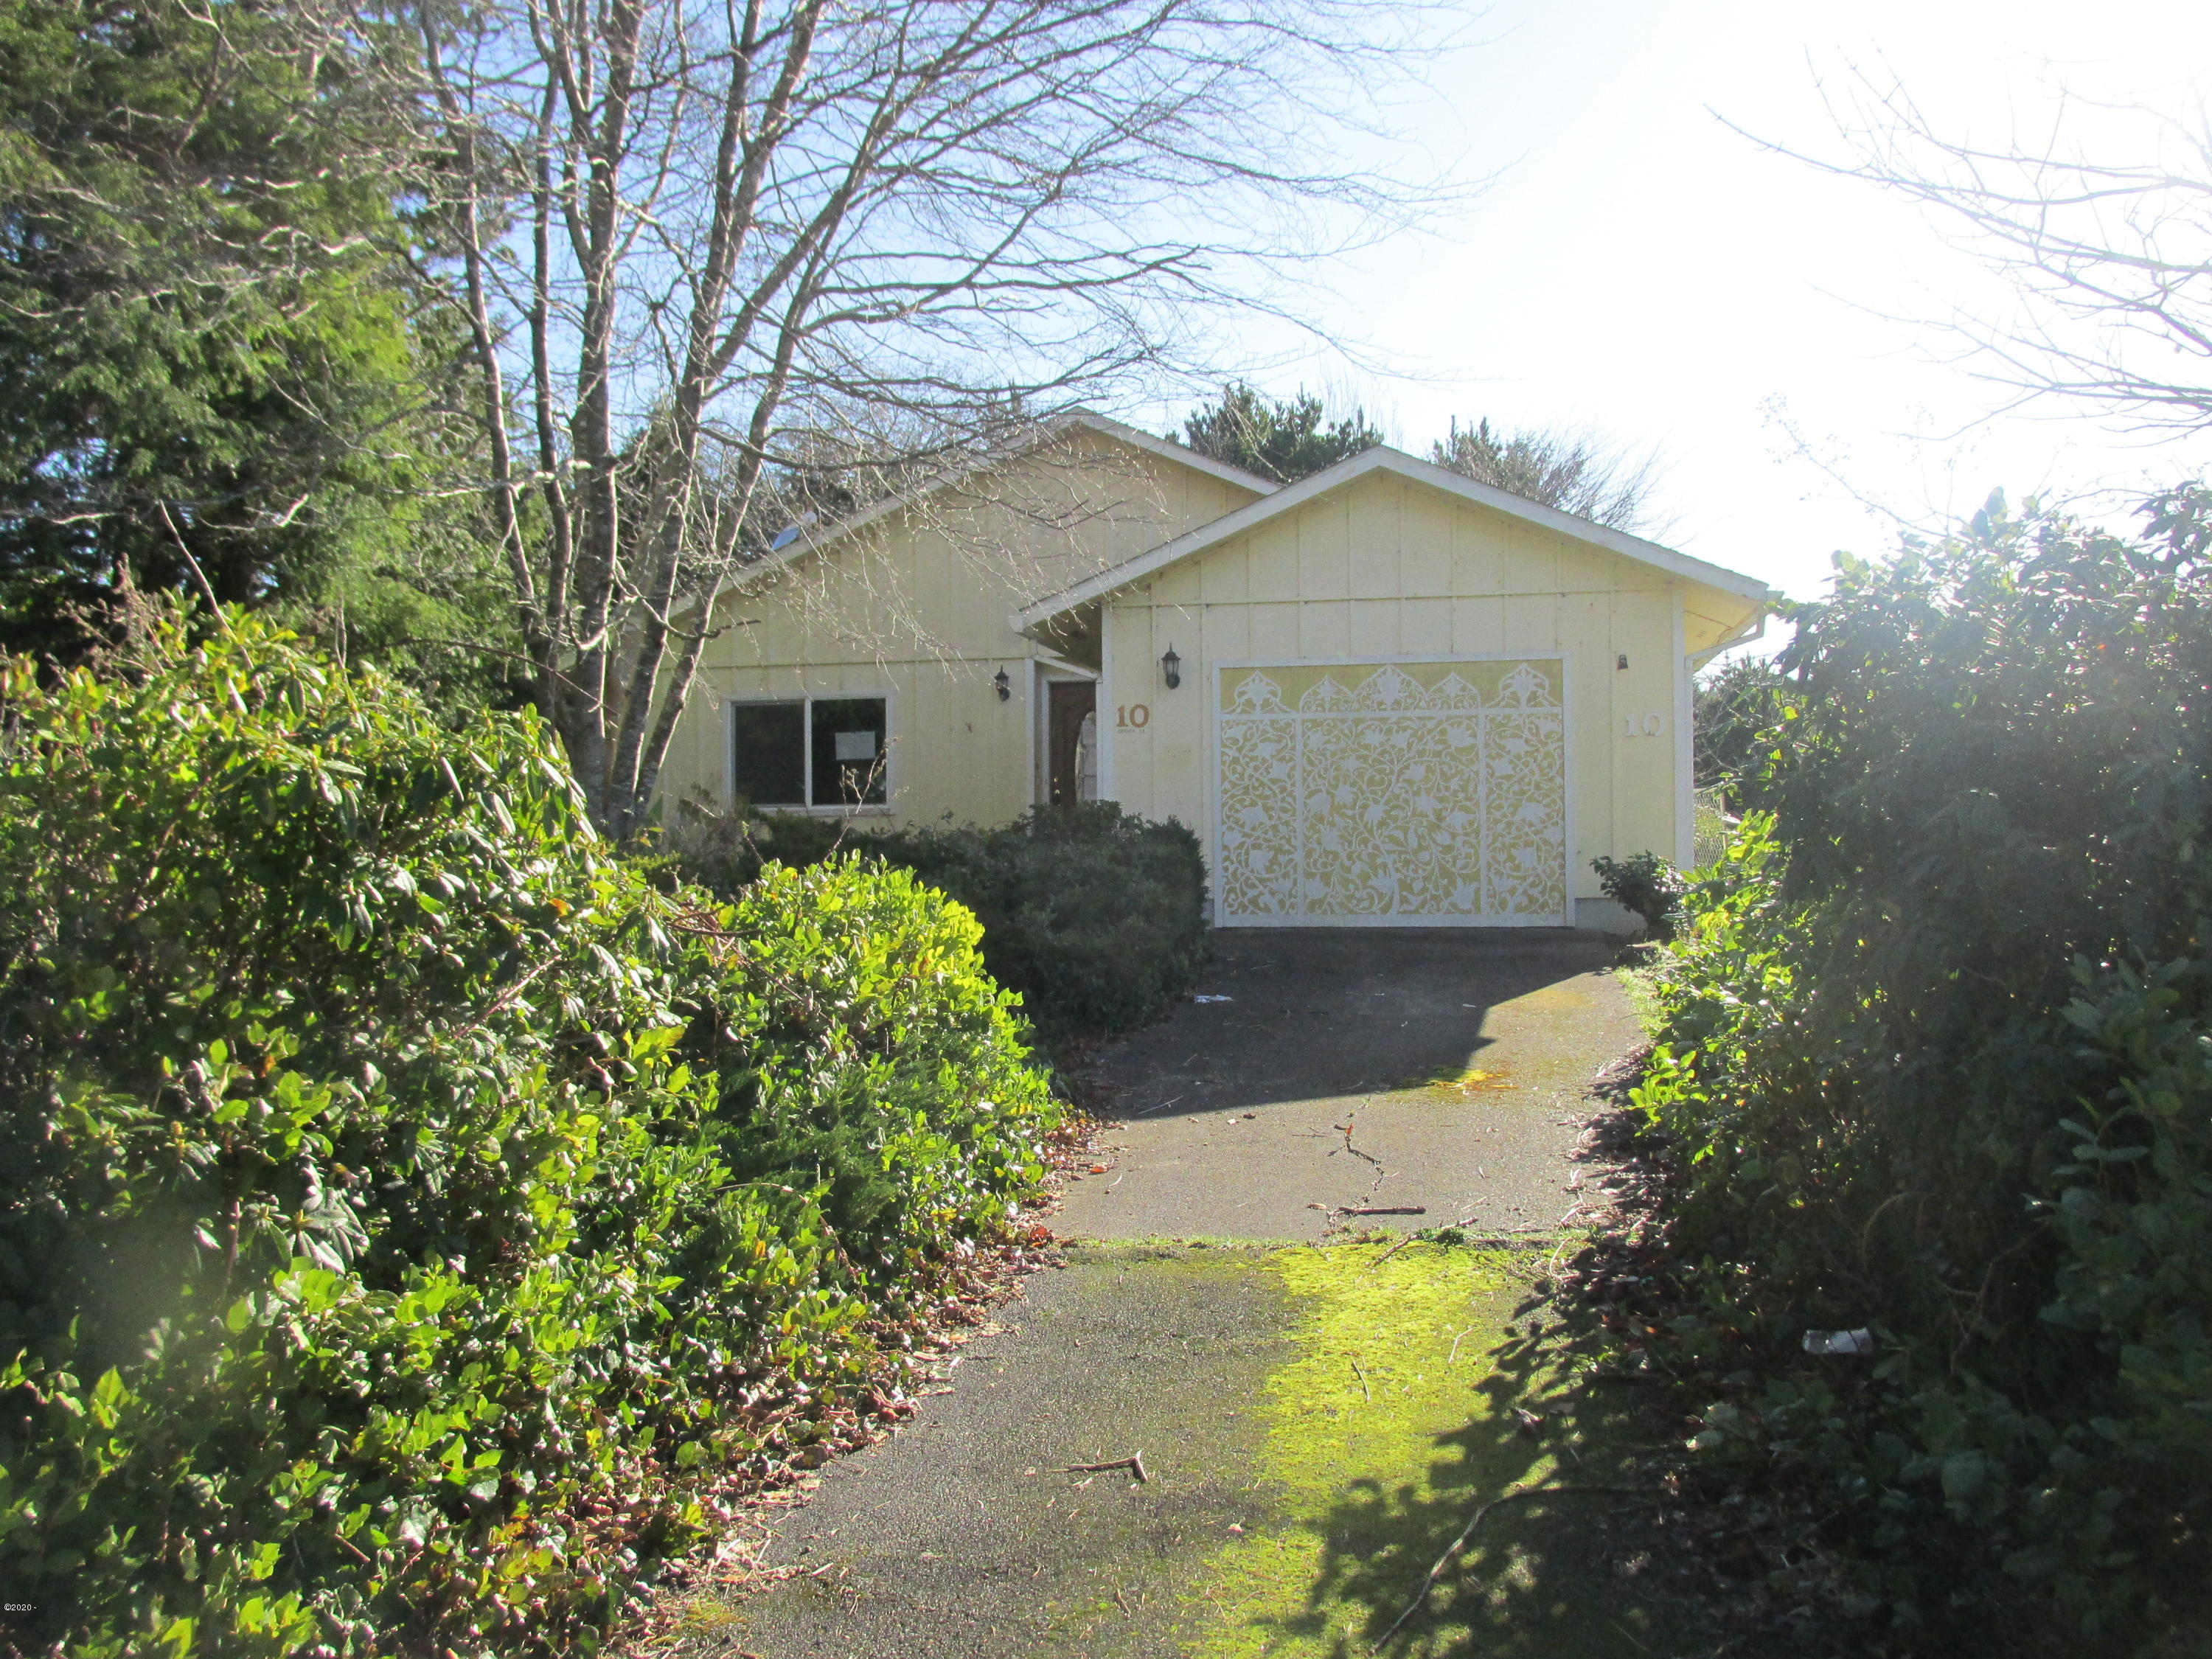 10 Spruce Ct, Depoe Bay, OR 97341 - IMG_6948